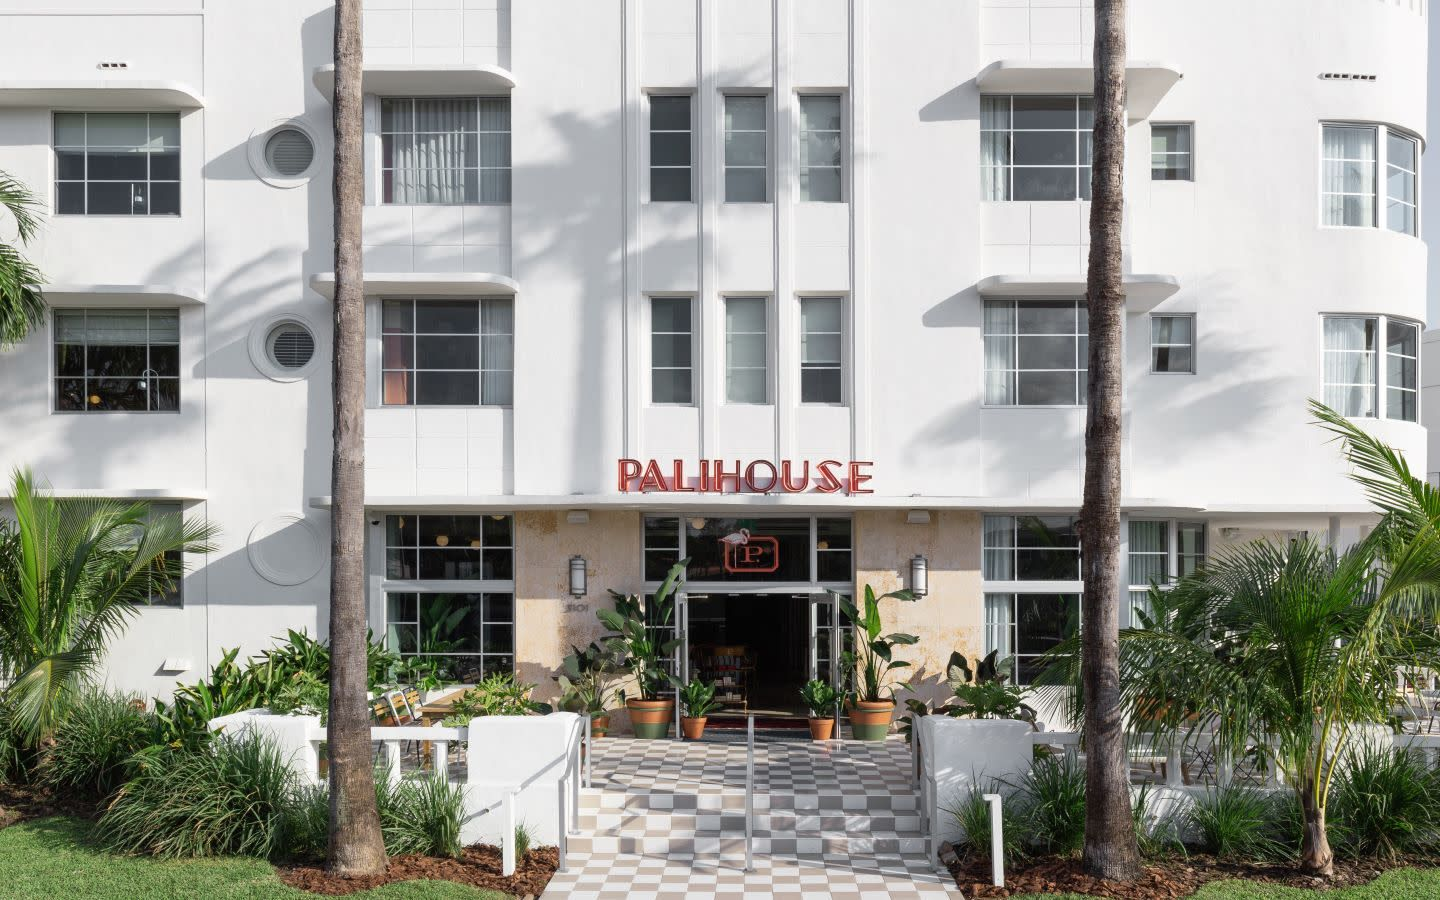 Palihouse Miami Beach facade